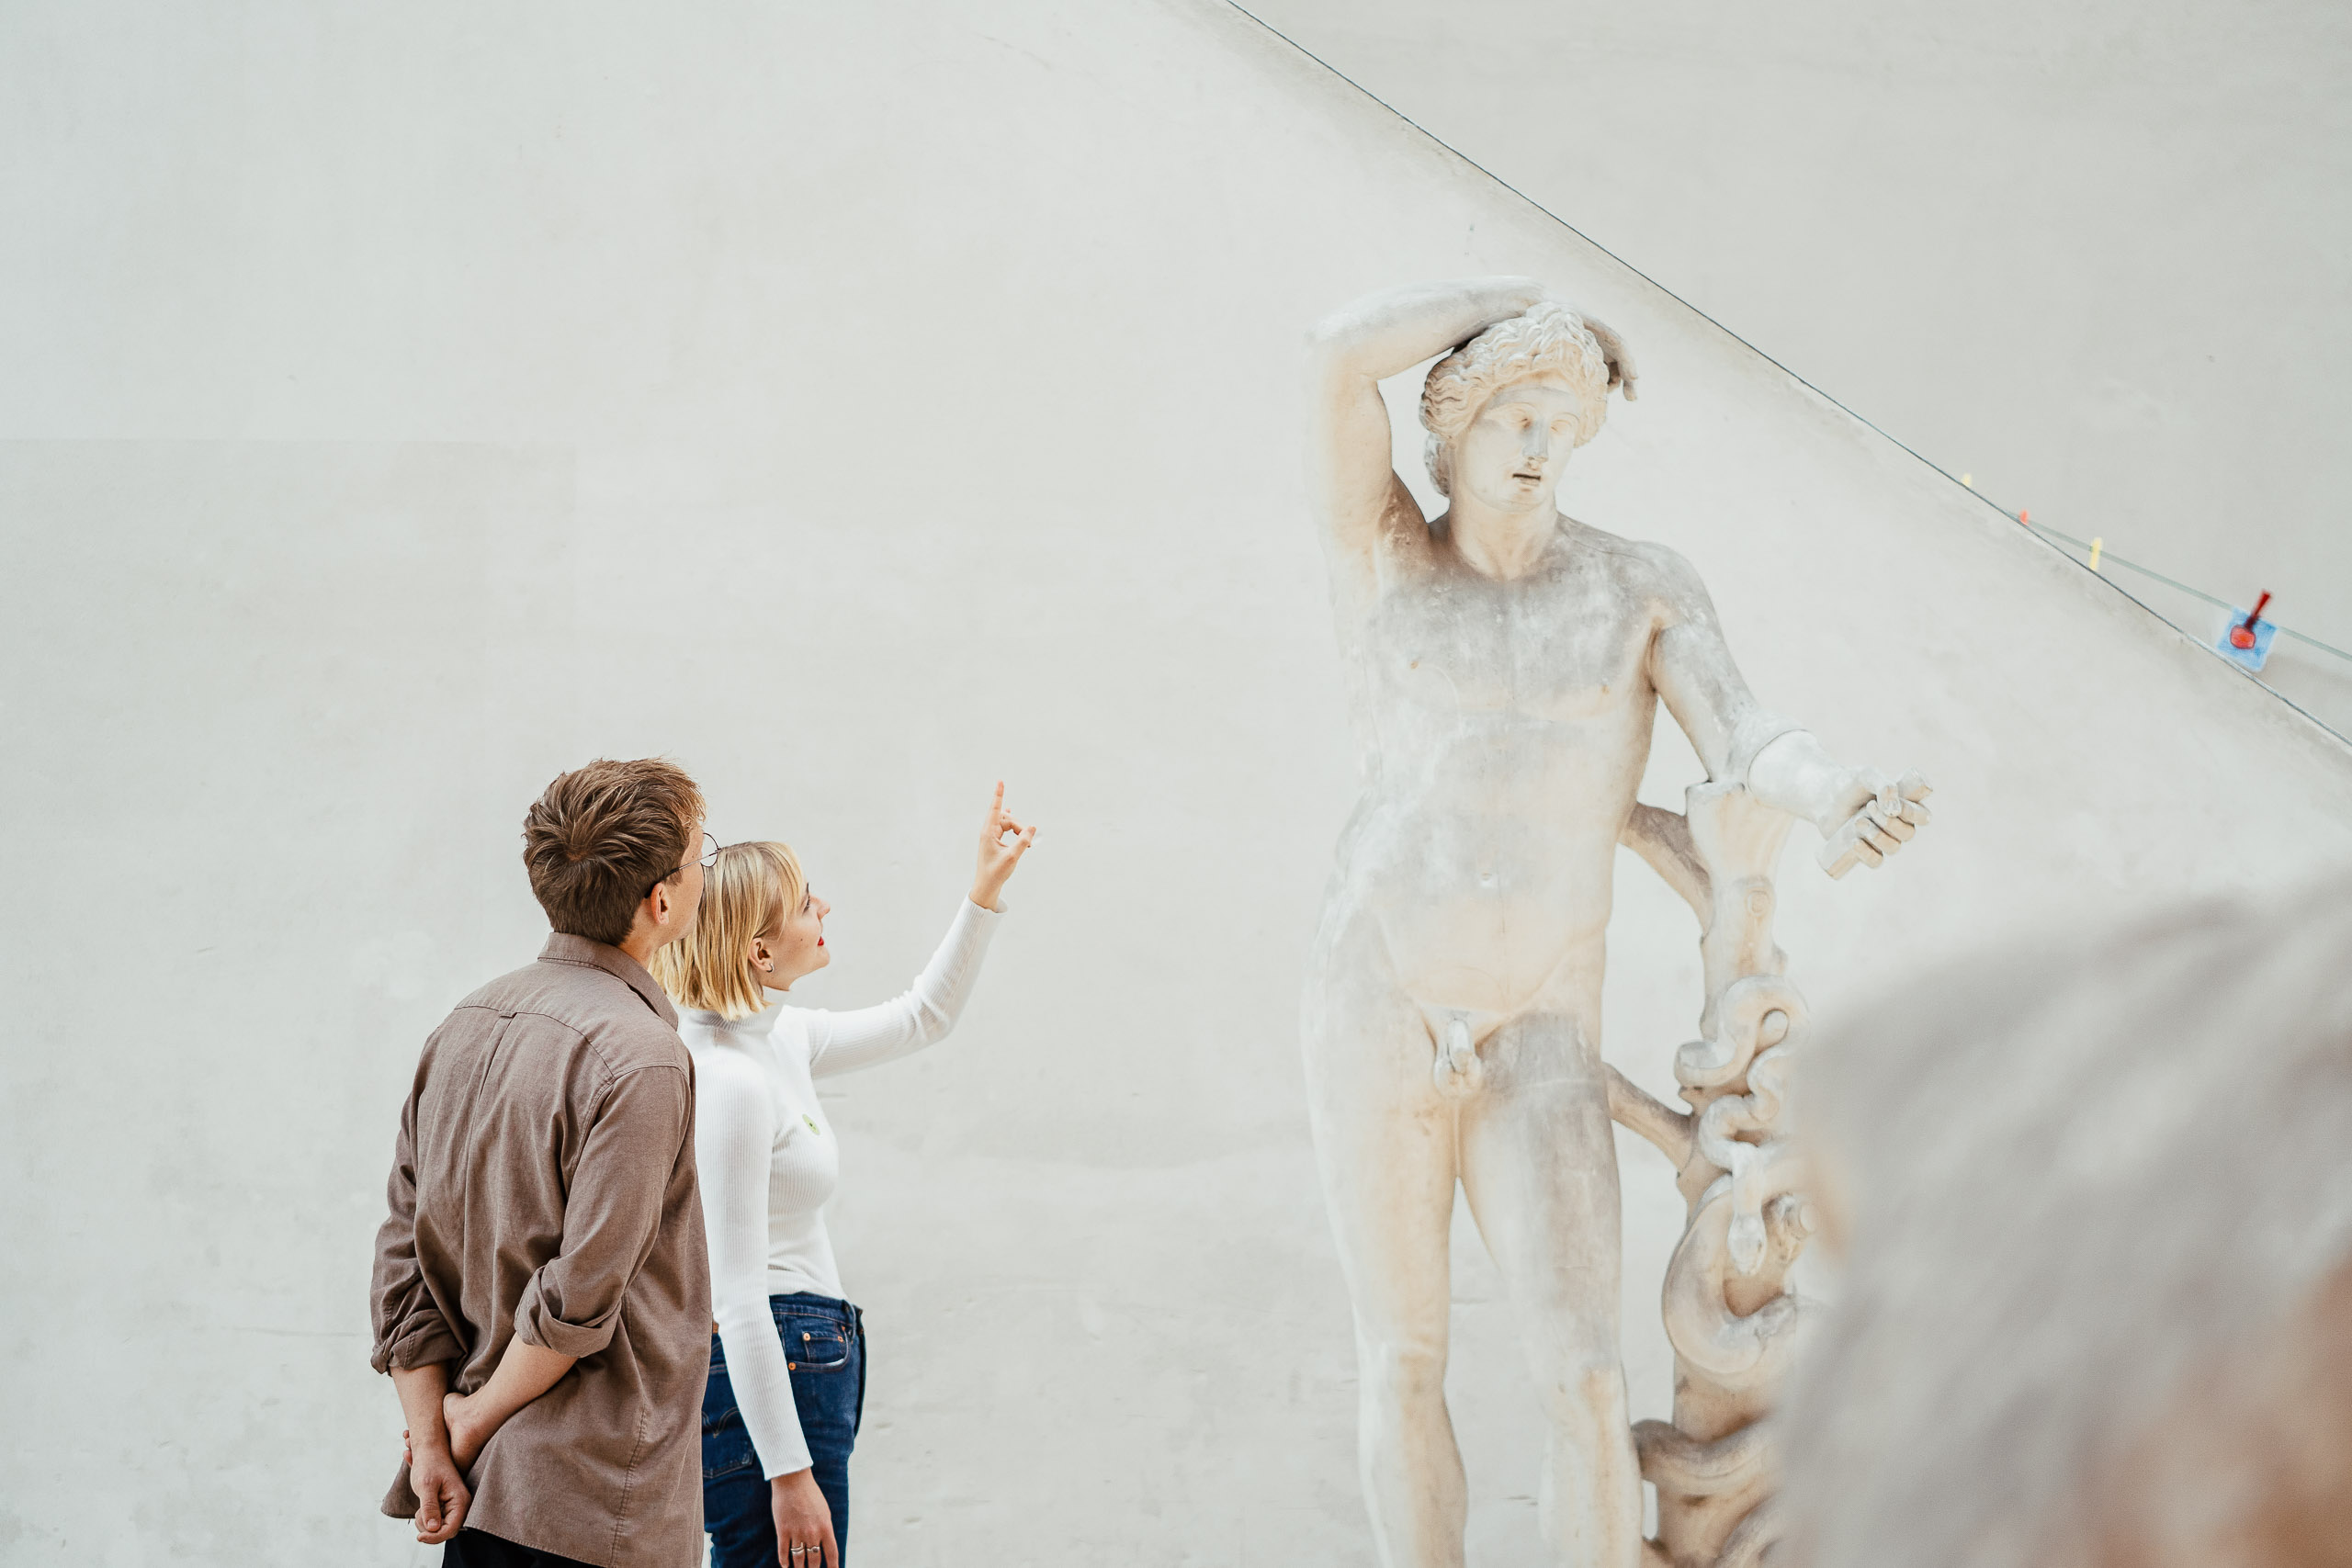 Visitors are watching art at National Gallery of Denmark.